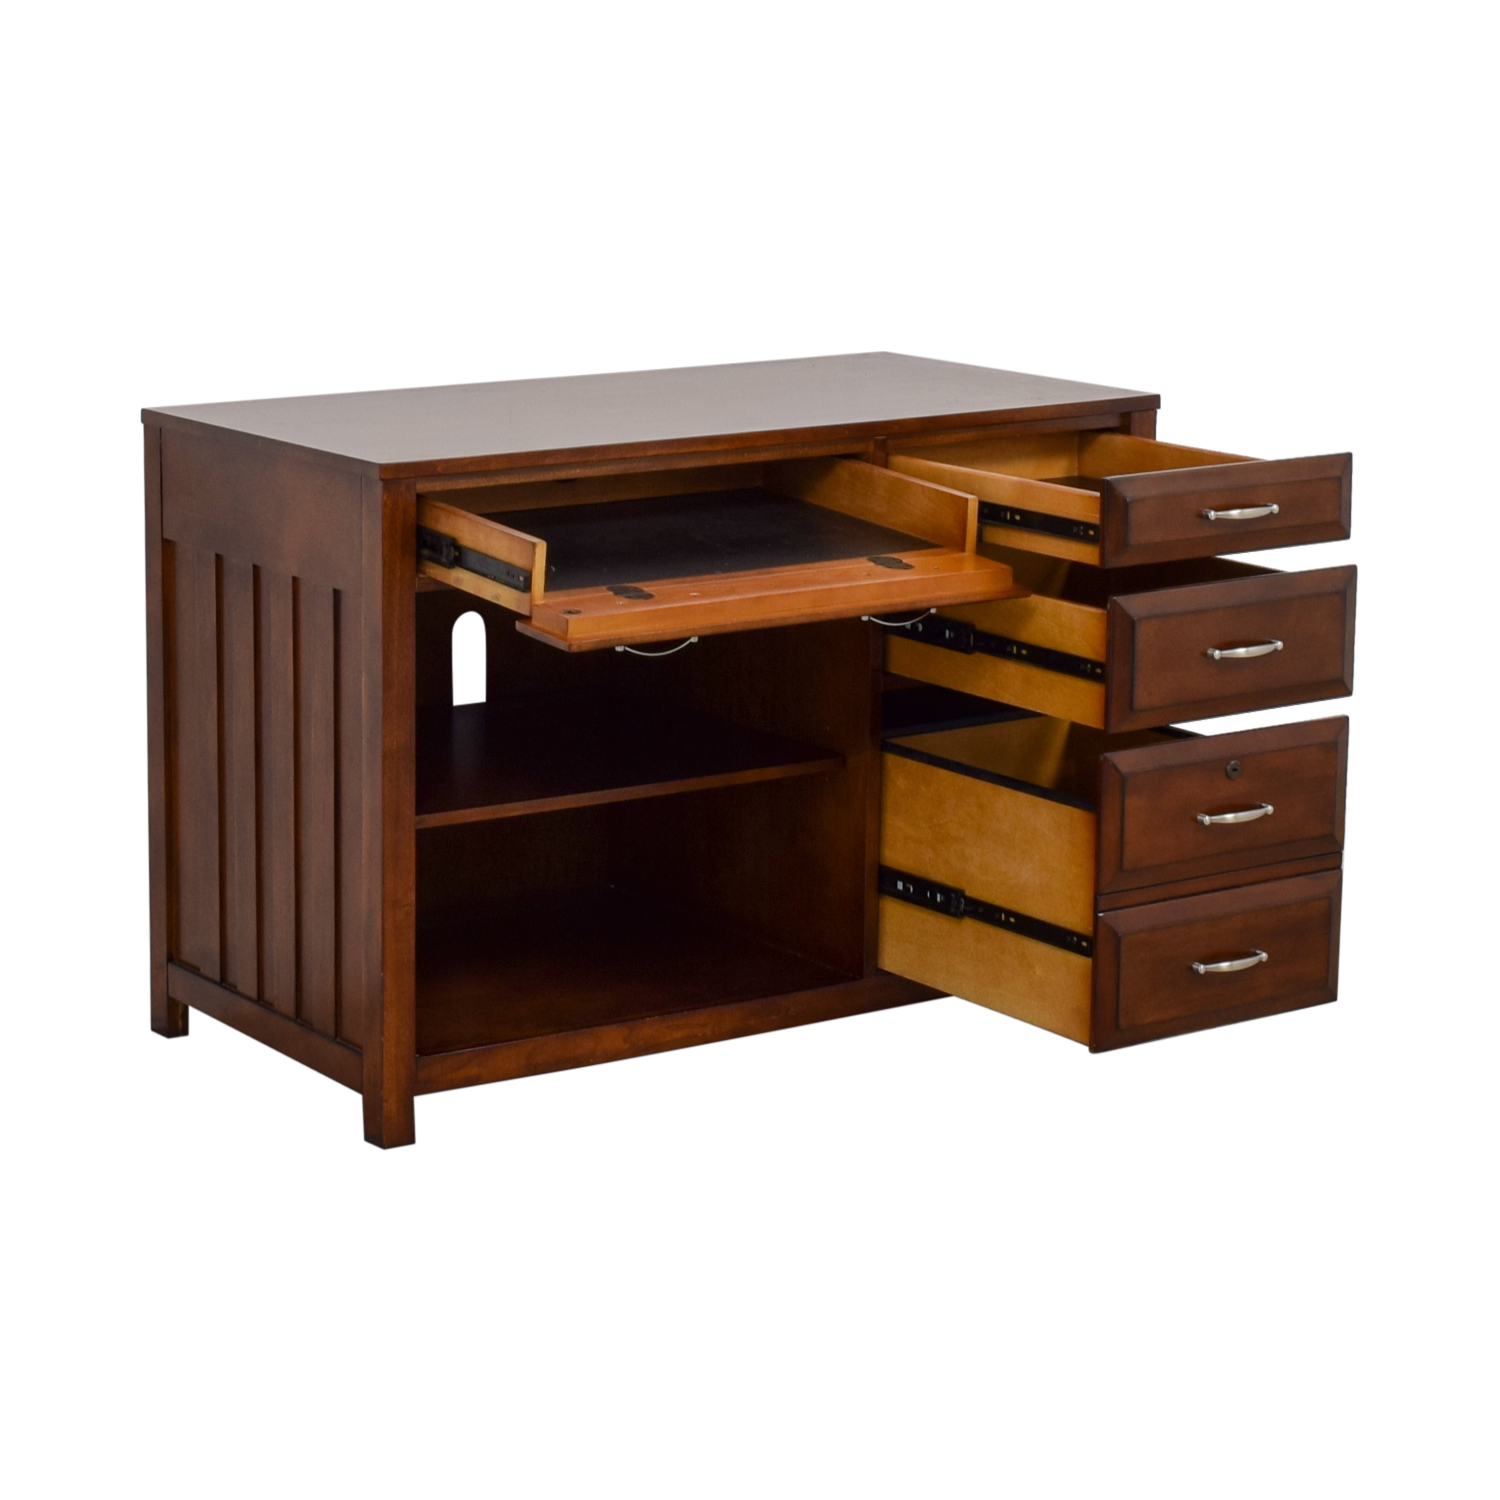 90 Off Liberty Furniture Liberty Furniture Three Drawer